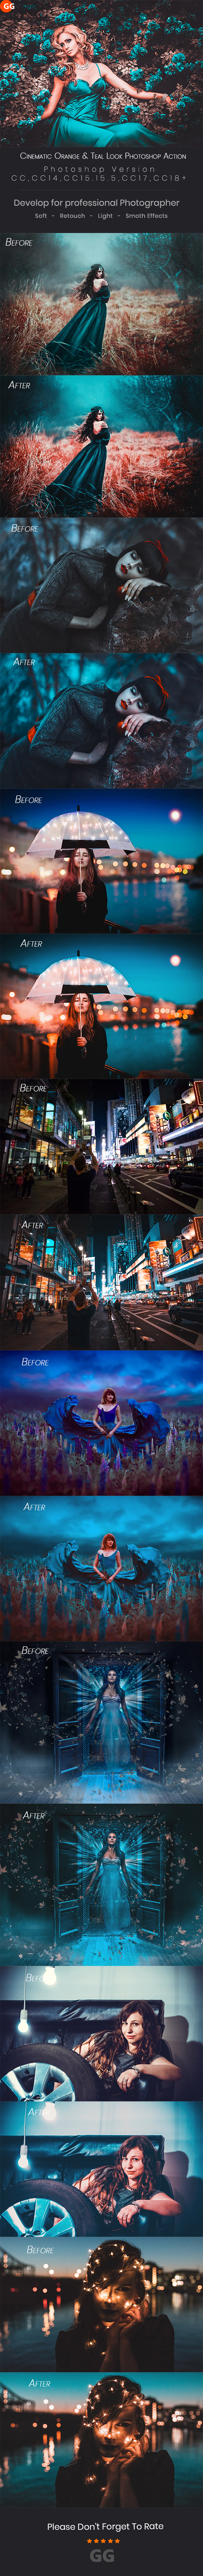 10 Cinematic Orange & Teal Look Photoshop Action - Photo Effects Actions